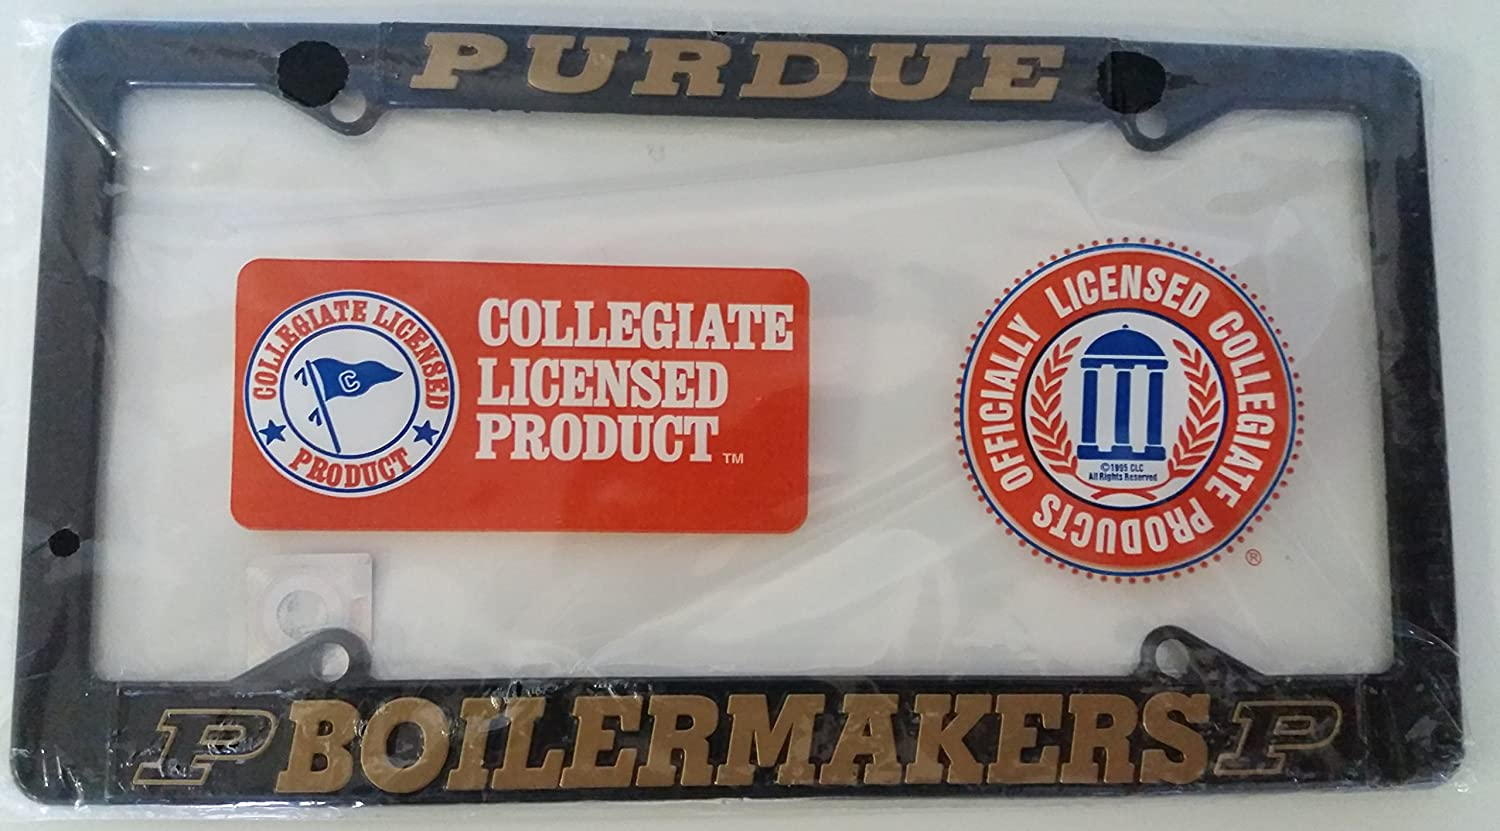 Auto Car Truck Chrome Boiler Up New Purdue Boilermakers Metal License Plate Frame